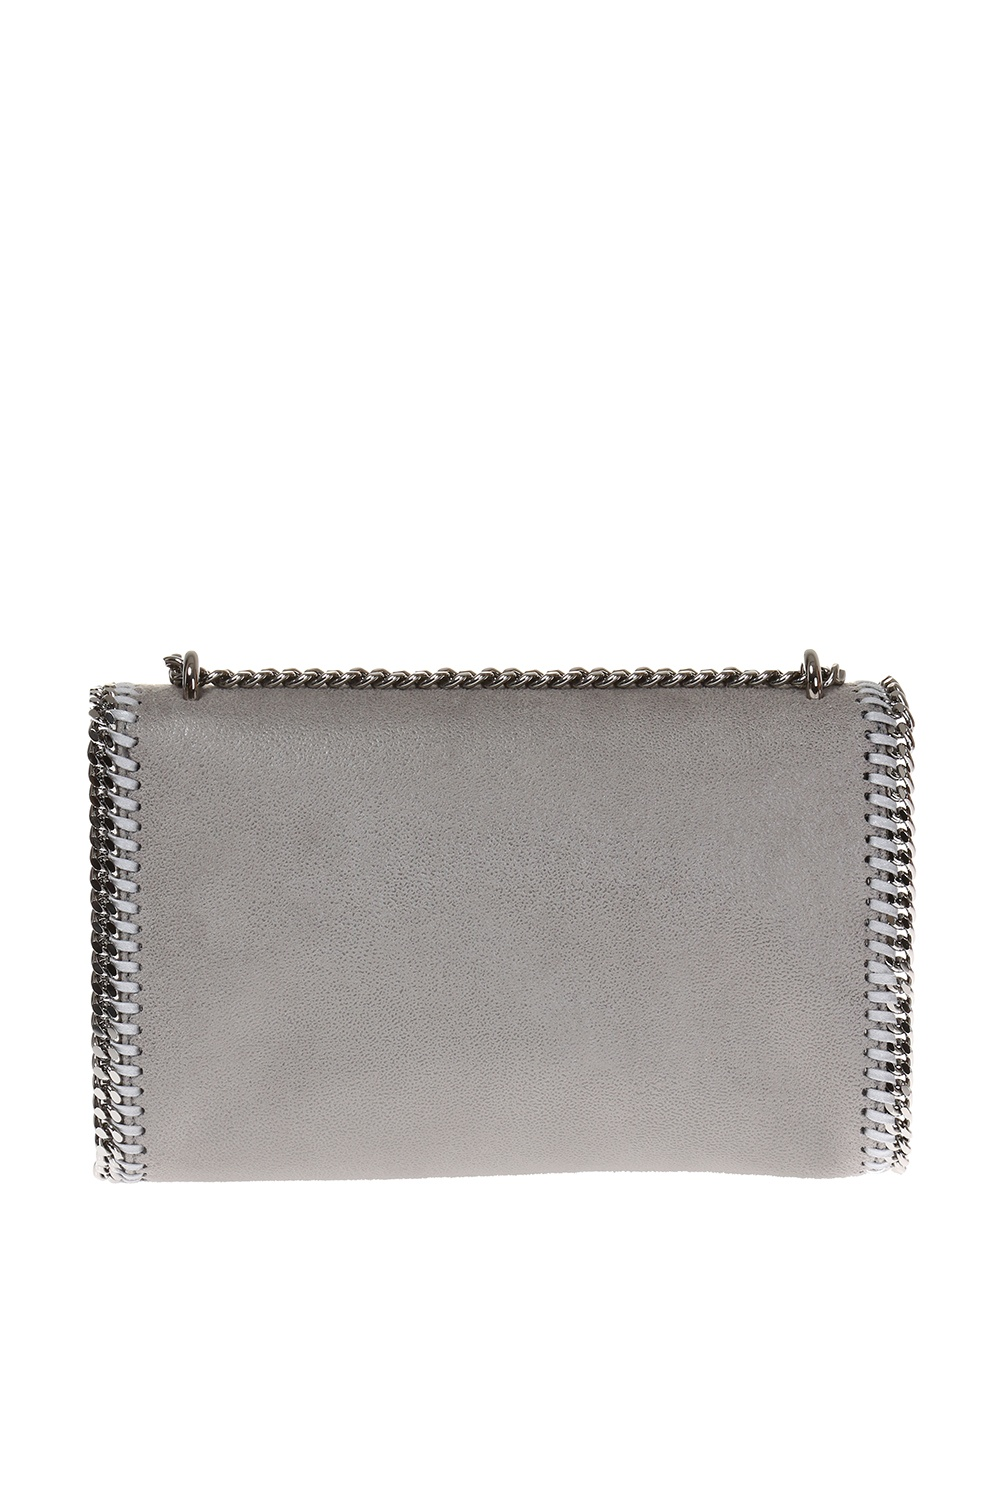 Stella McCartney 'Falabella shoulder bag